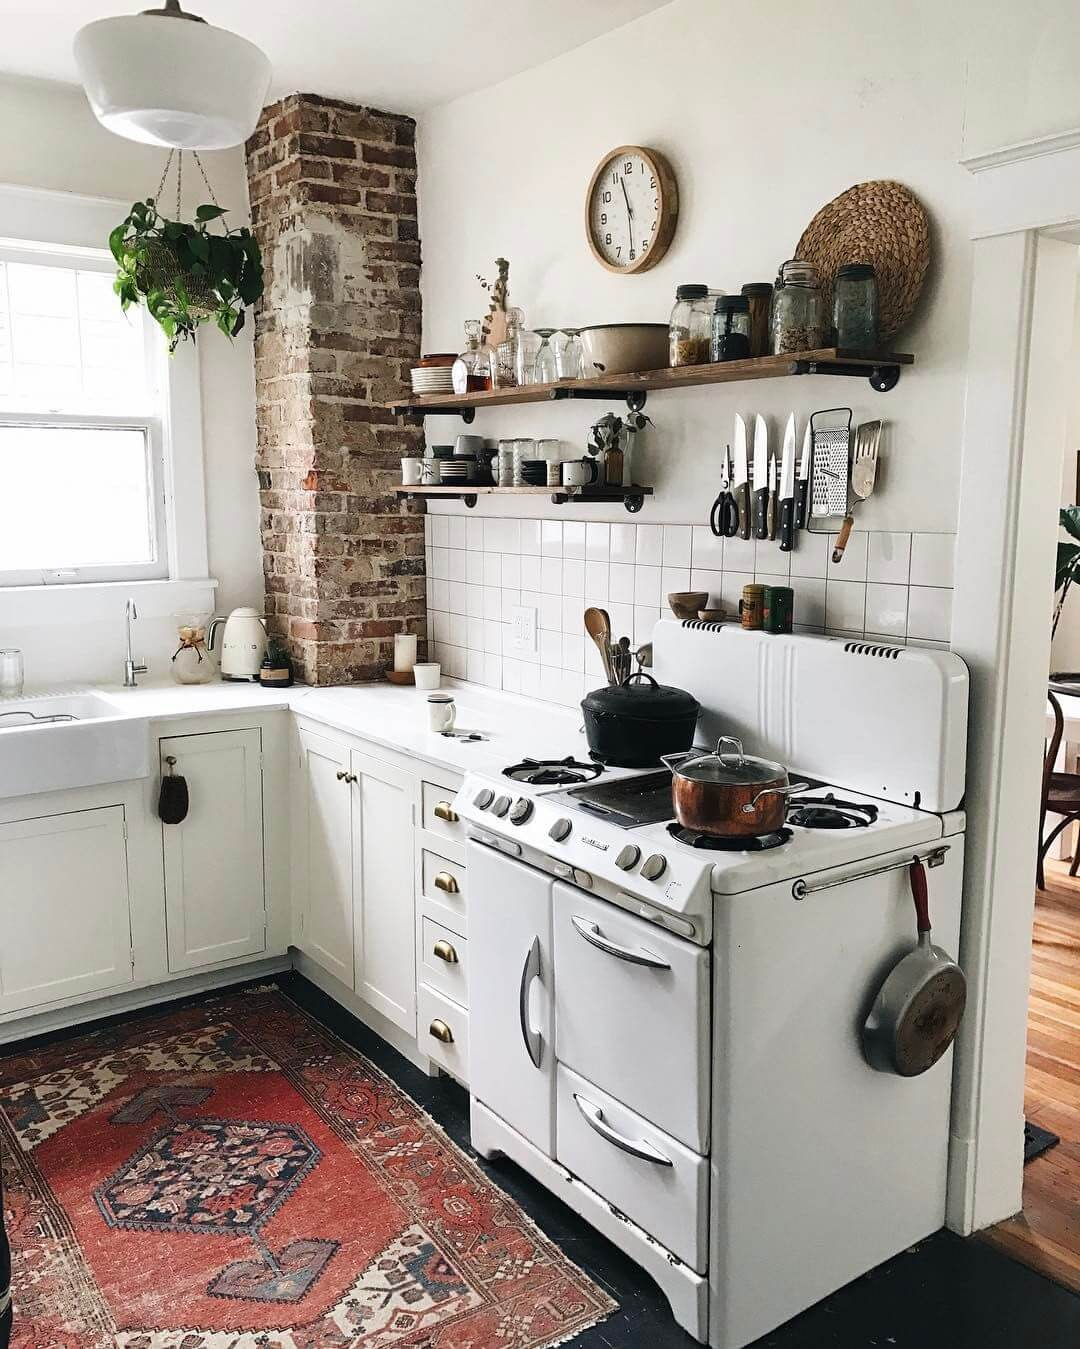 23 best cottage kitchen decorating ideas and designs for 2019 rh homebnc com Small Cottage Kitchen Ideas On a Budget Small Cottage Kitchen Ideas On a Budget